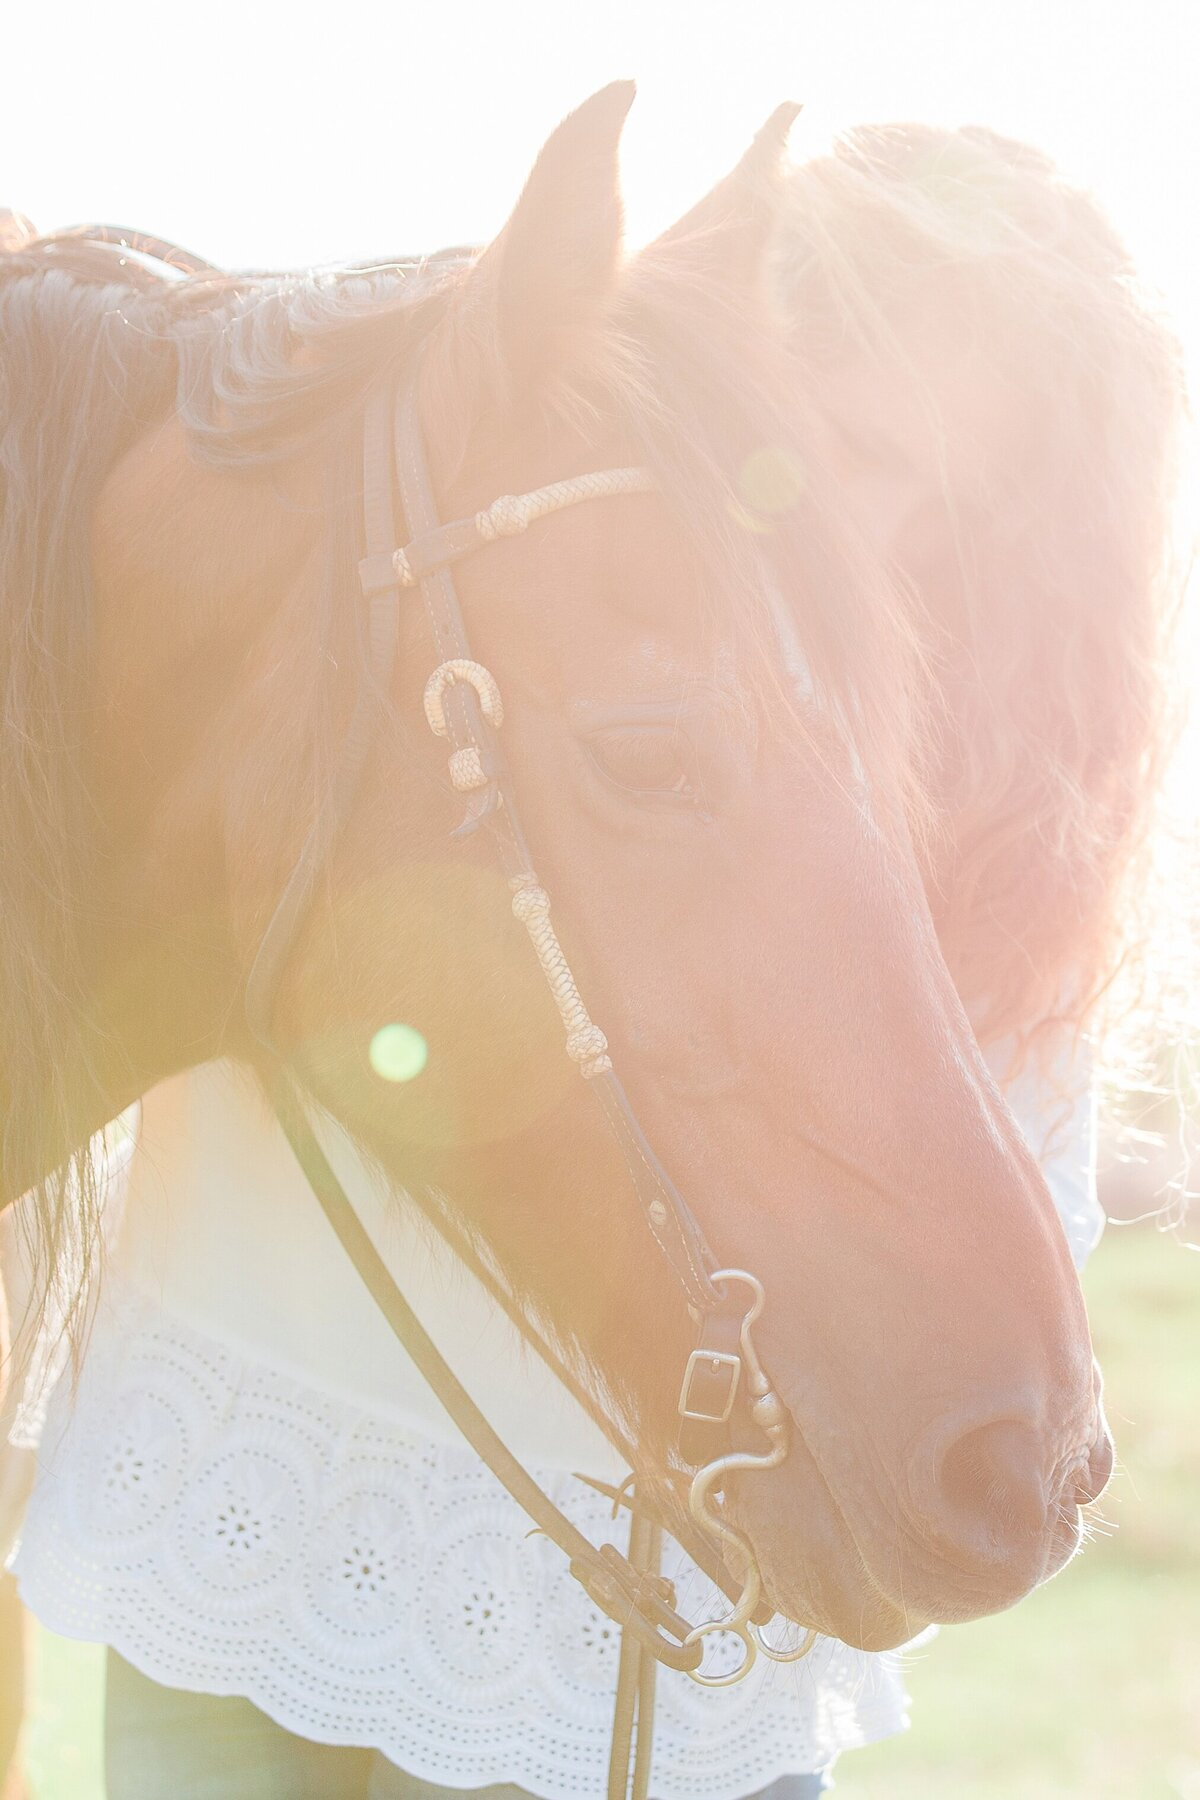 portrait of a horse's head with her owner standing next to him at sunset